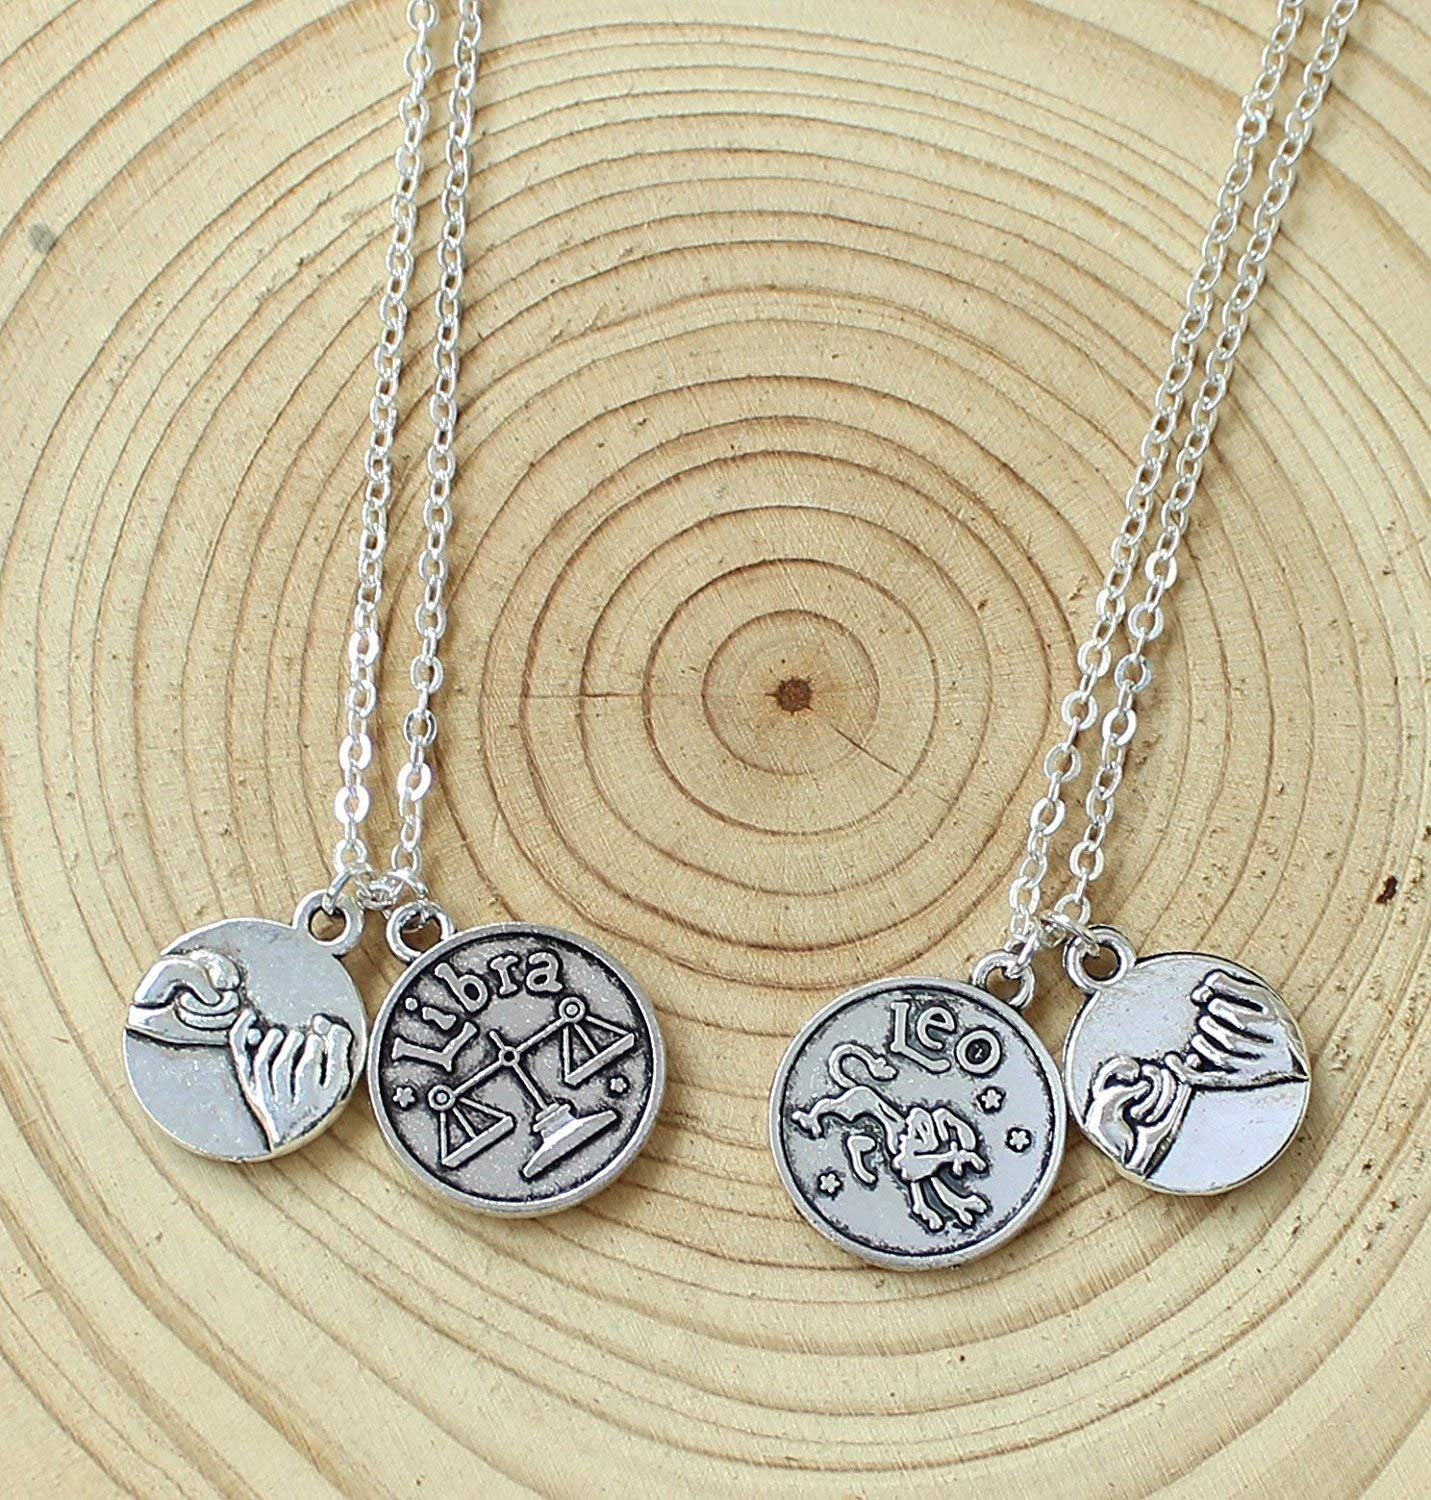 Custom Personalized ZoCustom Personalized Zodiac Necklace